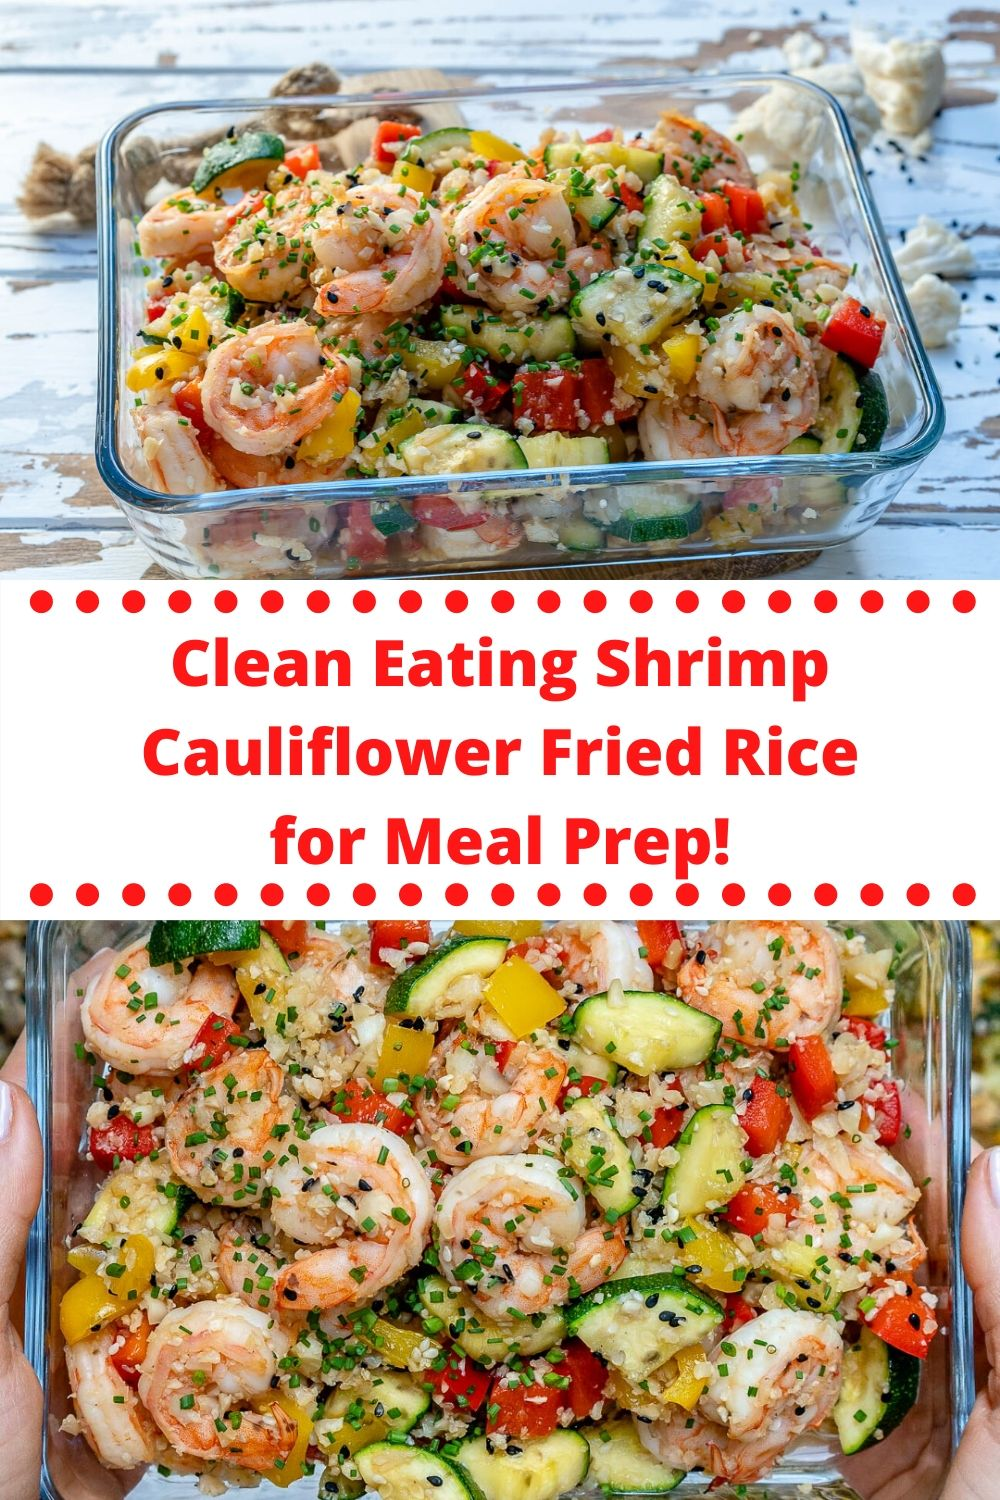 Clean Eating Shrimp Cauliflower Fried Rice for Meal Prep!